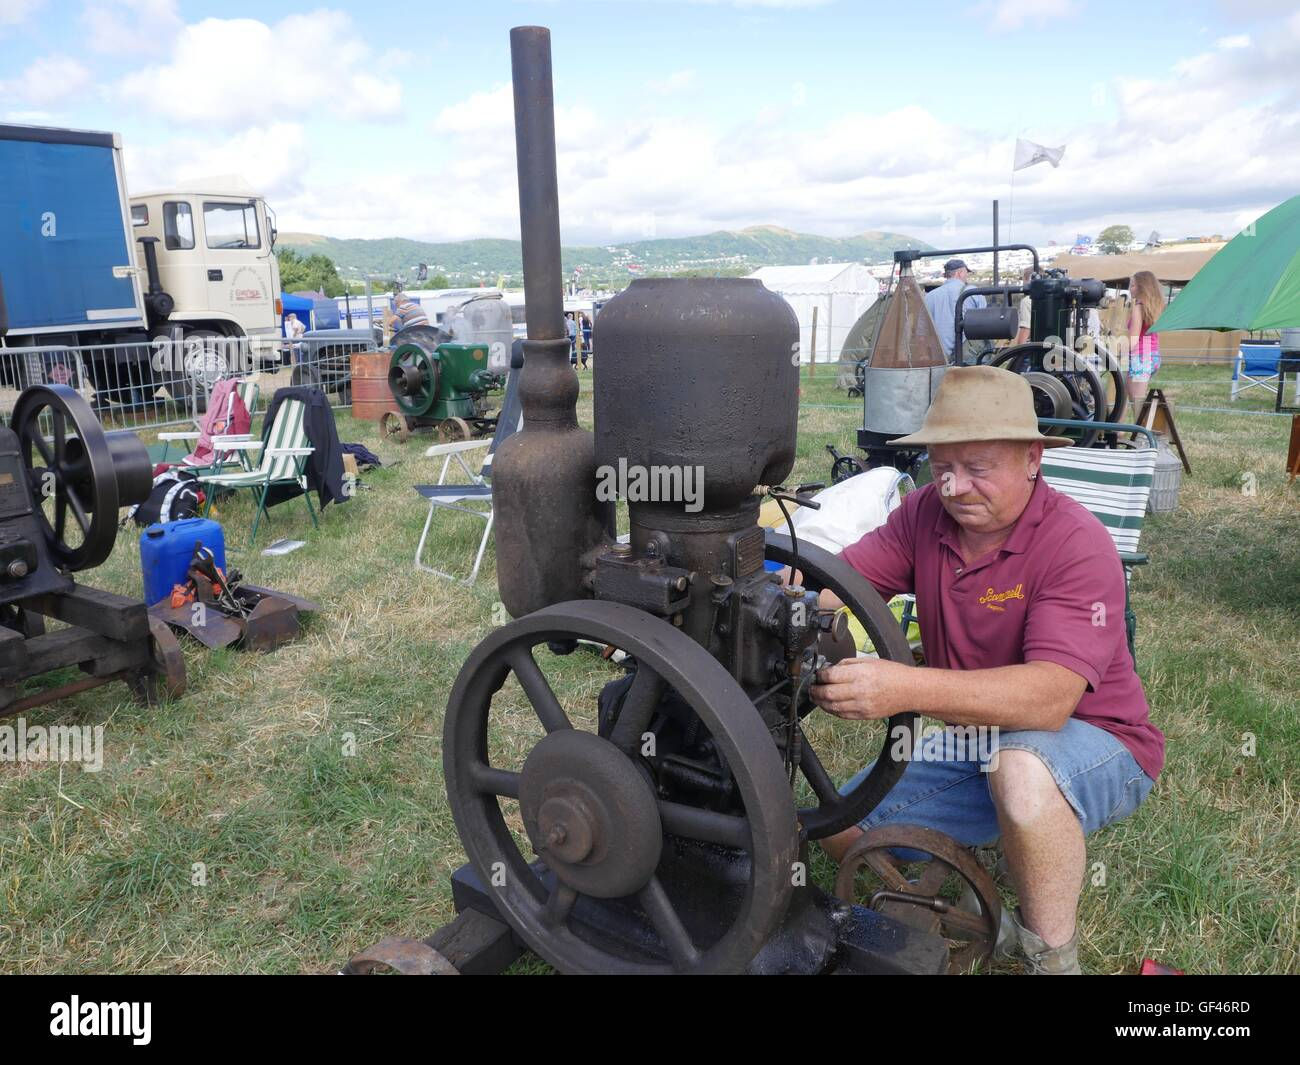 near Malvern, UK. 29th July, 2016. Bob Townsend of Tadley, Hampshire attending to one of his petrol/parafin powered - Stock Image